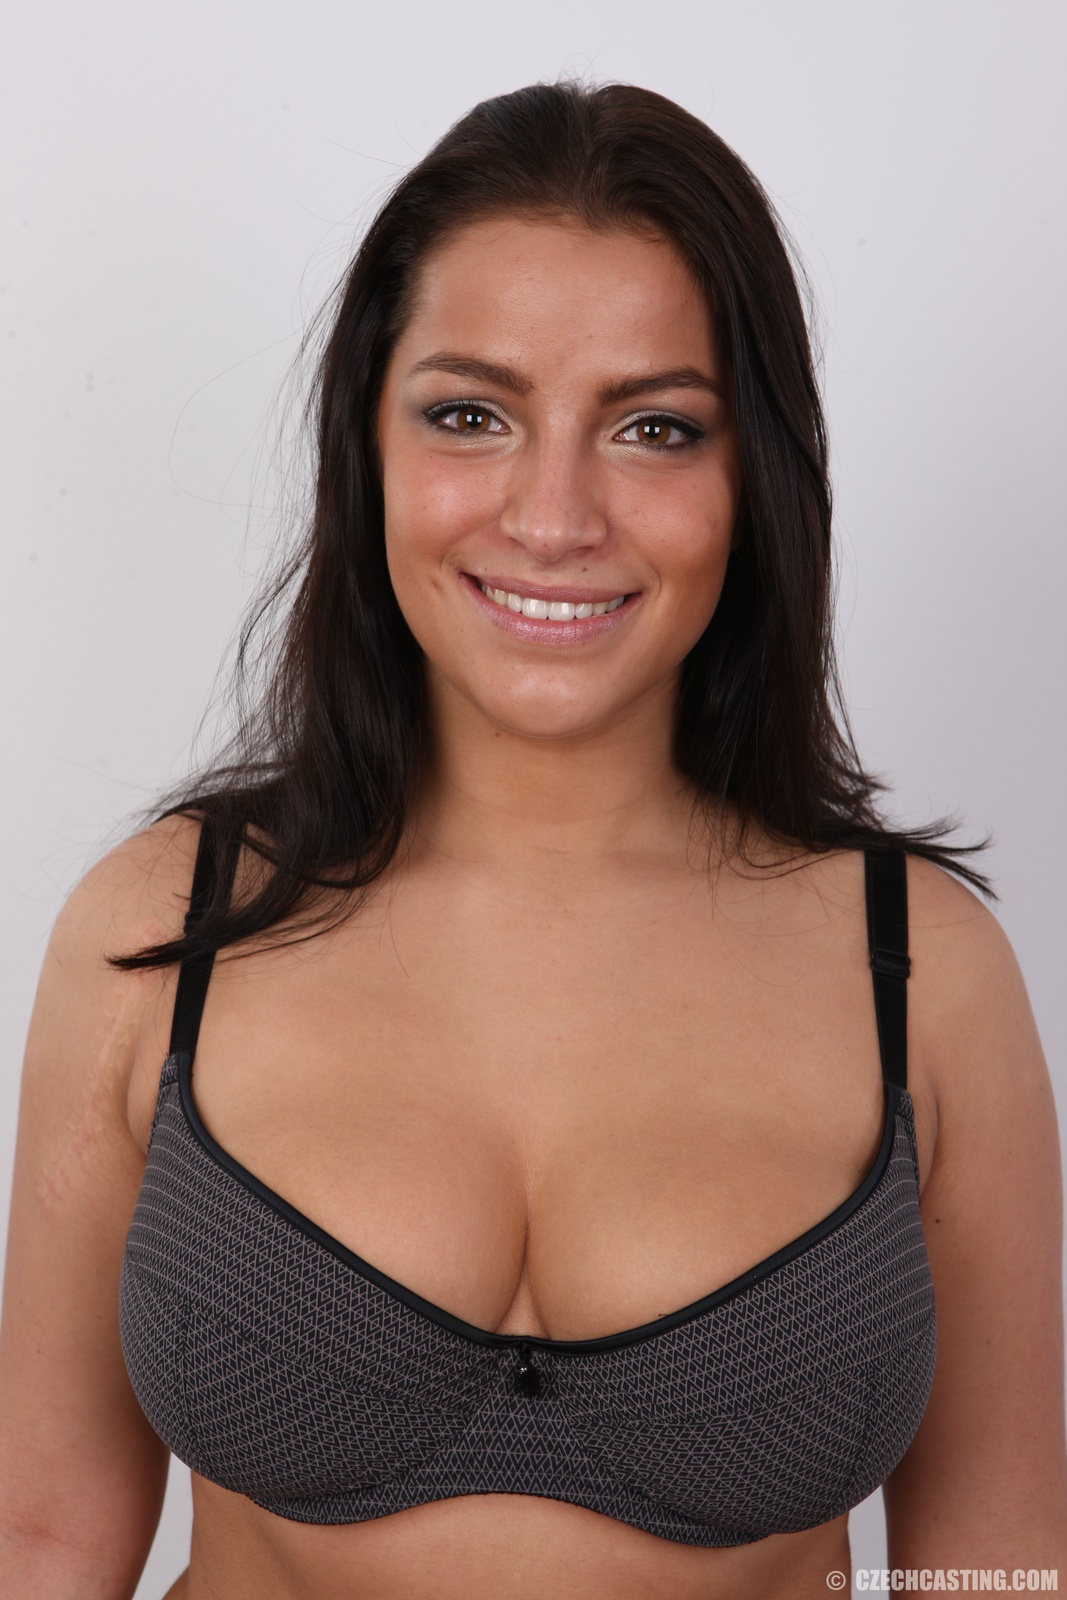 Tereza Beauty and Boobs Czech Casting - Prime Curves